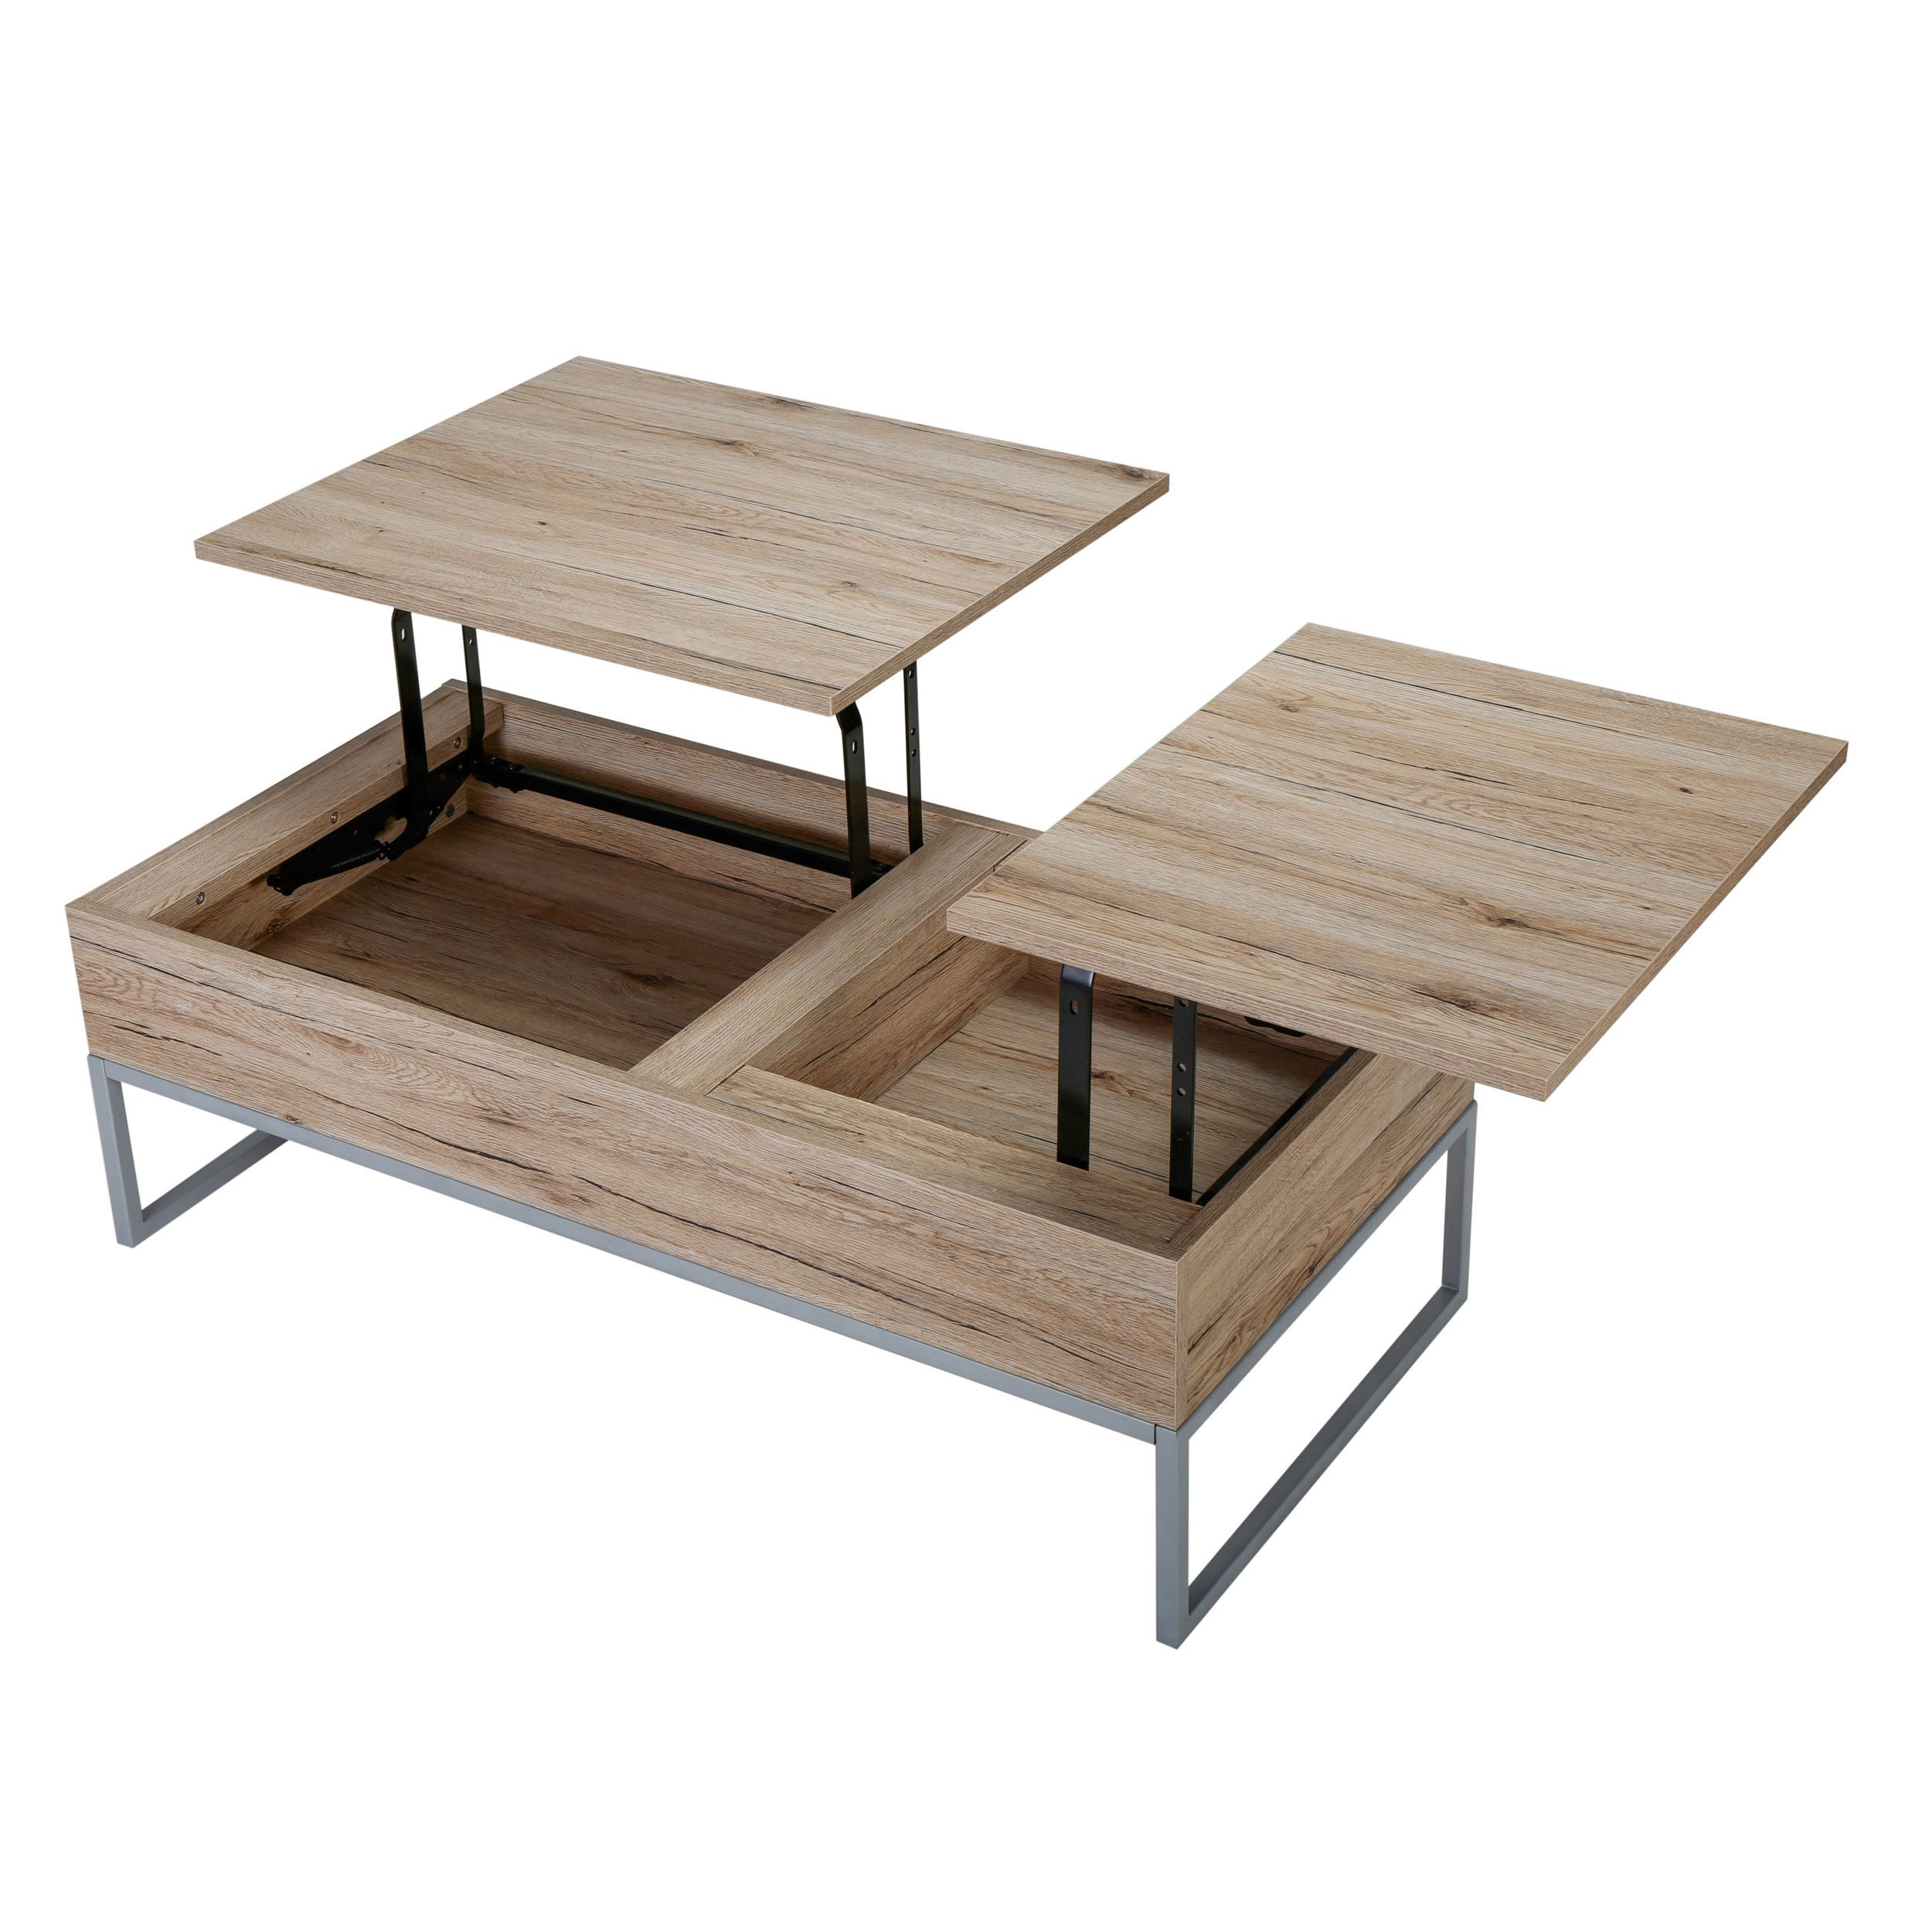 Lift Top Coffee Table Plans Free Christopher Knight Home Lift Top Wood Storage Coffee Table